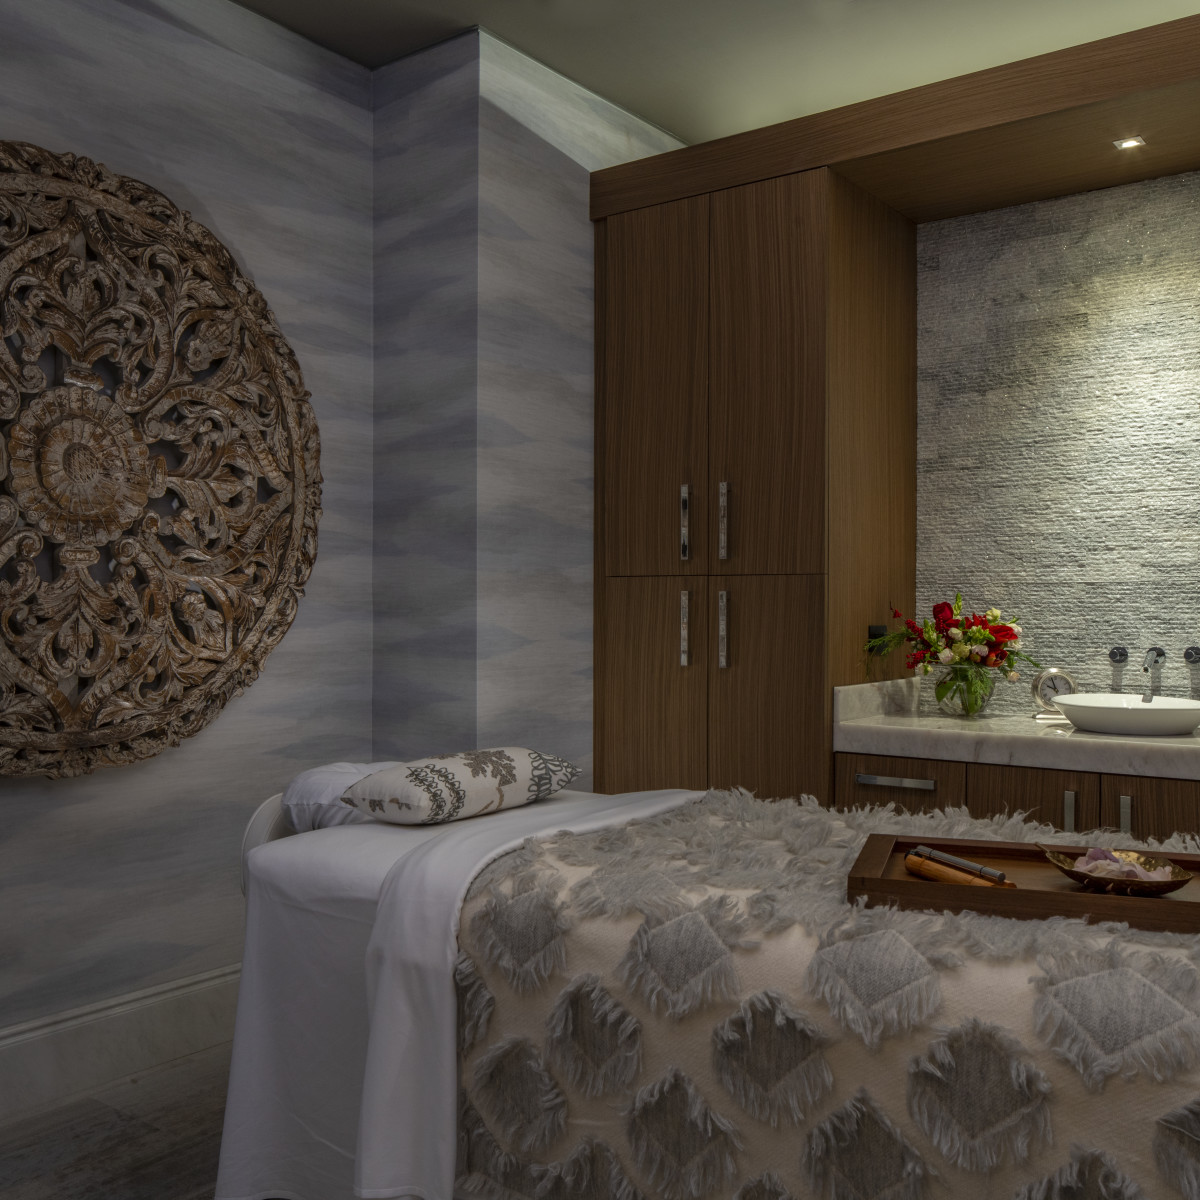 The Post Oak Hotel spa